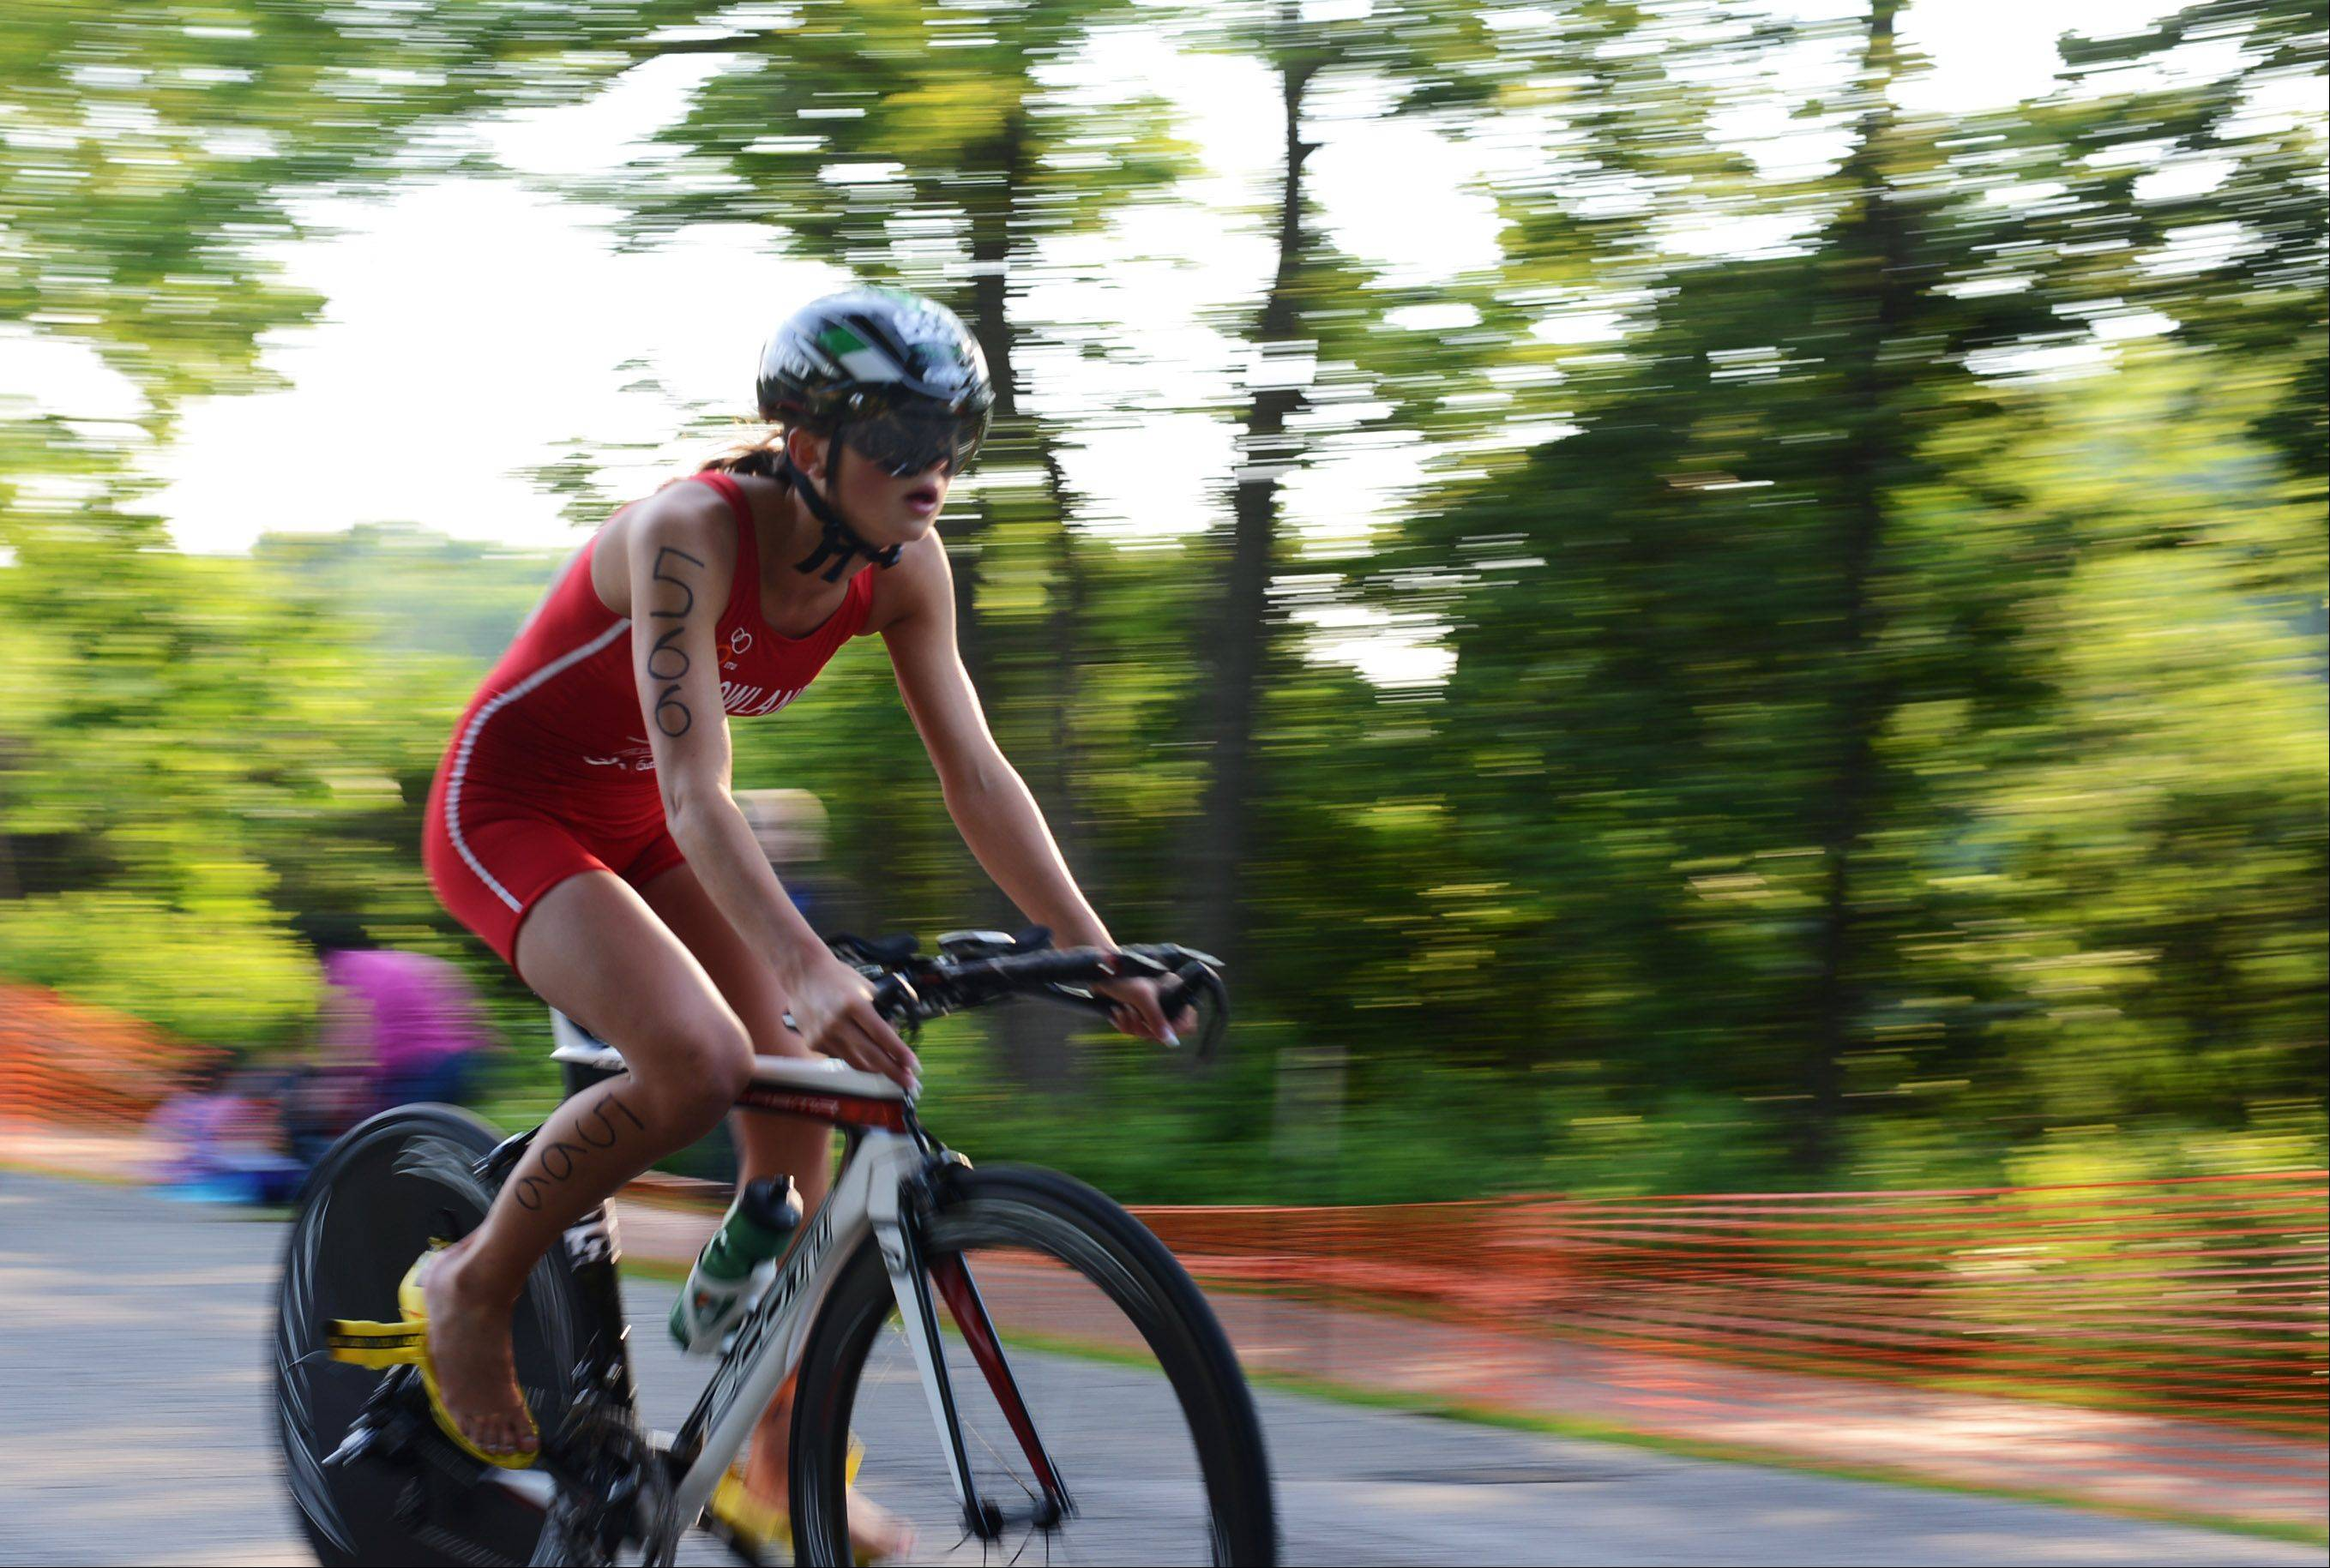 Jenn Howland, of Elburn, comes to the end of the biking portion of the tenth annual Batavia Triathlon Sunday.